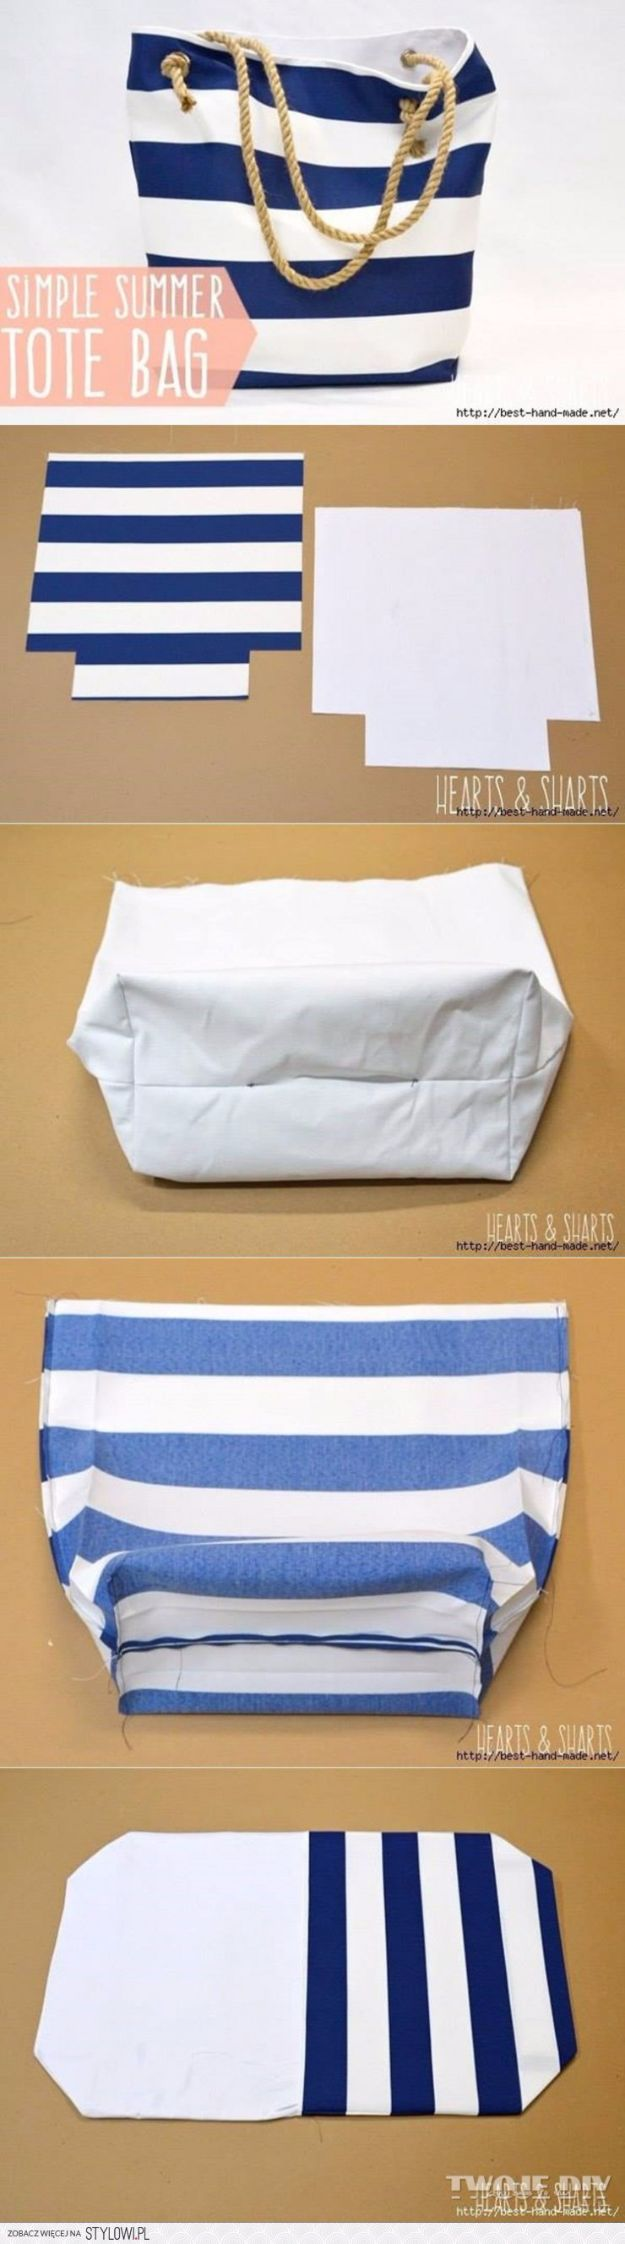 DIY Bags for Summer - Simple Summer Tote Bag - Easy Ideas to Make for Beach and Pool - Quick Projects for a Bag on A Budget - Cute No Sew Idea, Quick Sewing Patterns - Paint and Crafts for Making Creative Beach Bags - Fun Tutorials for Kids, Teens, Teenagers, Girls and Adults